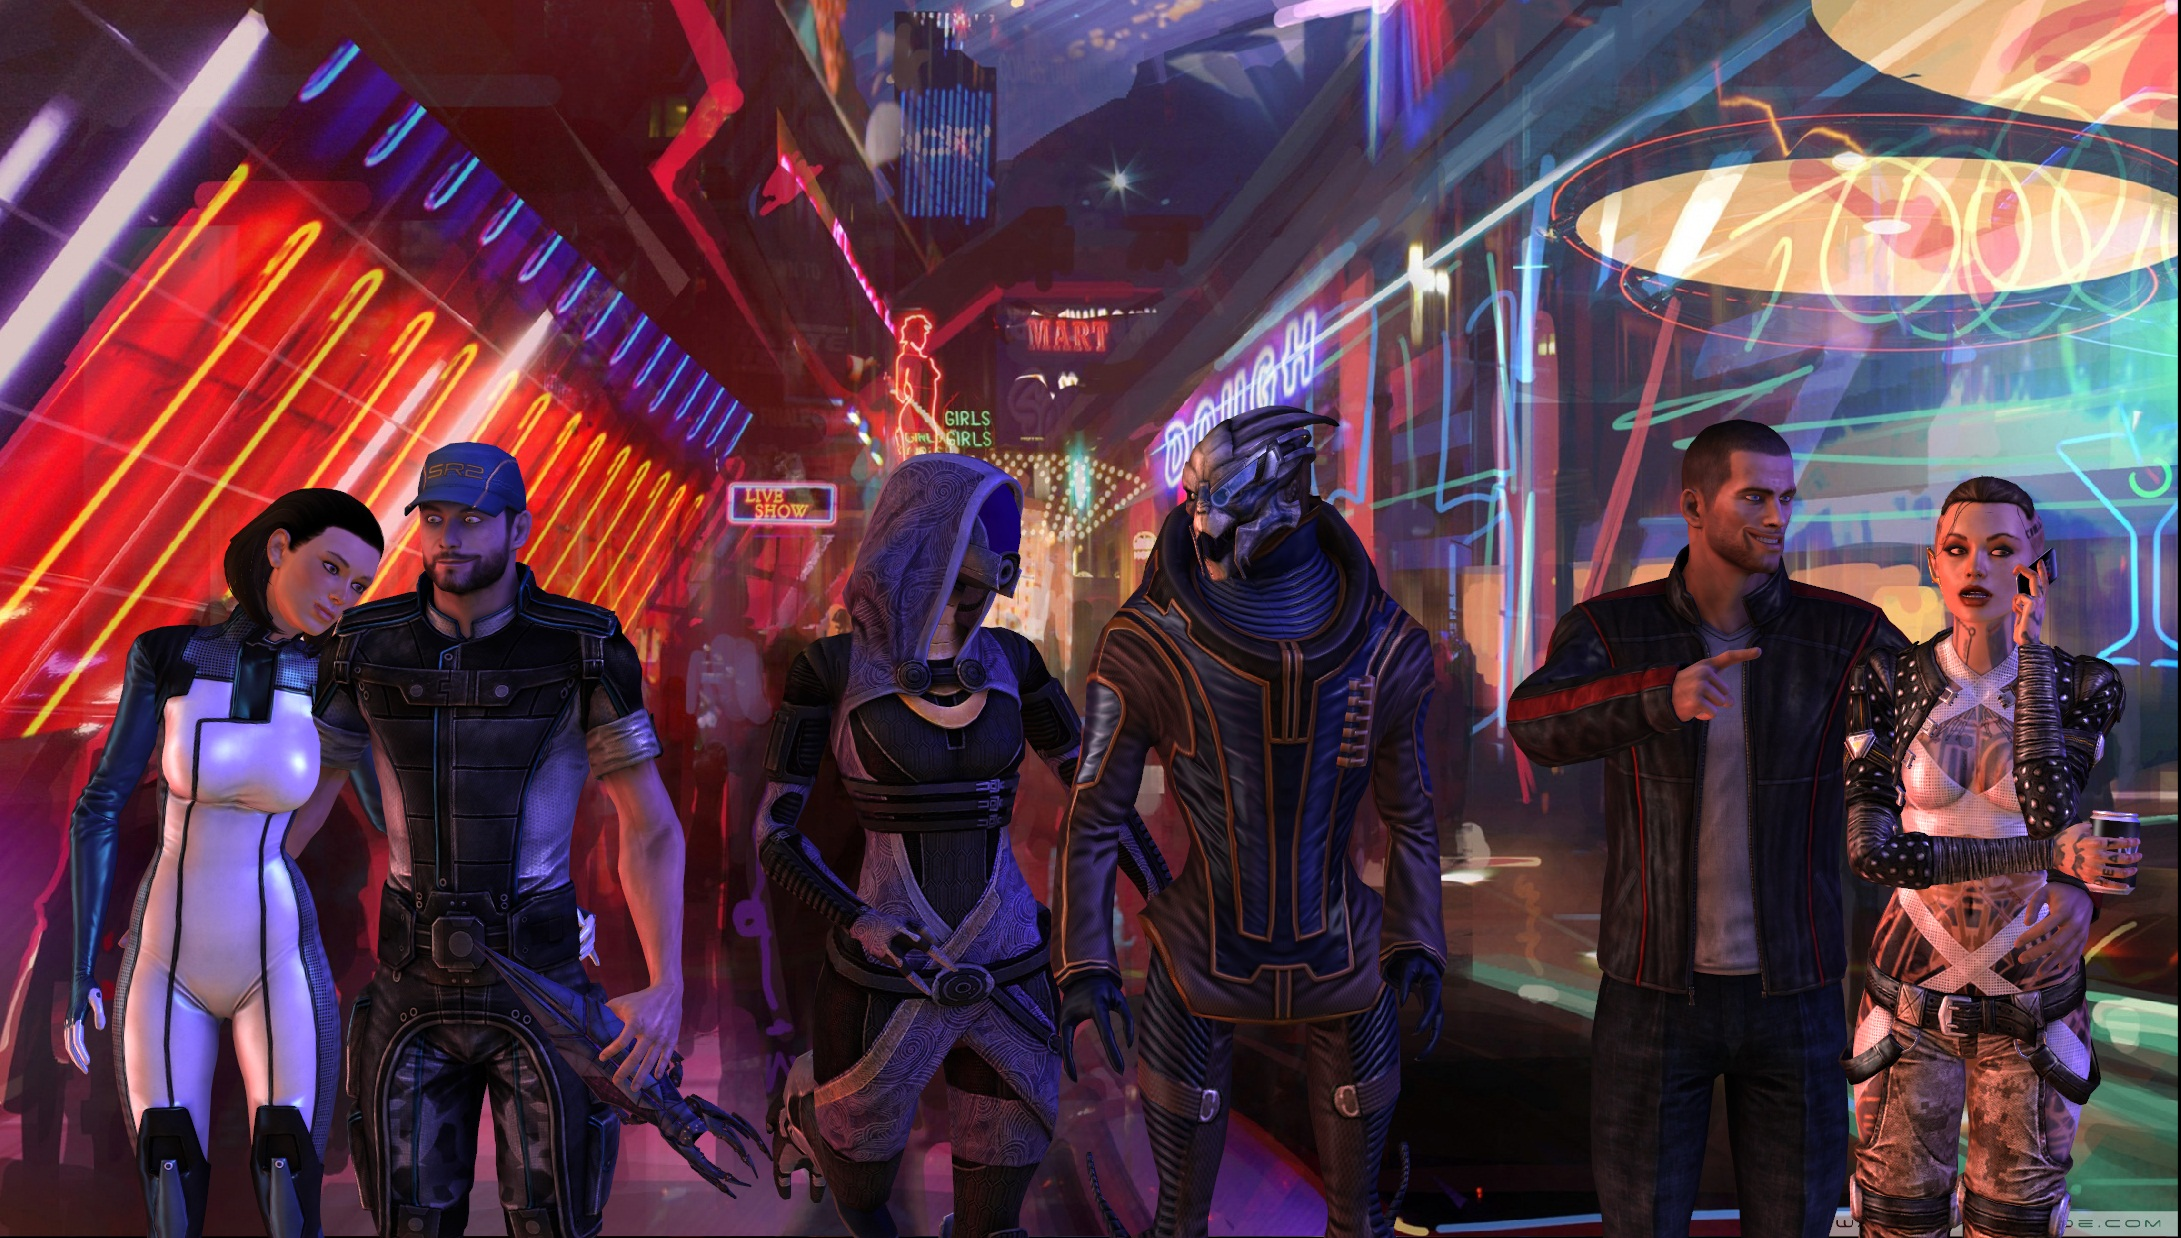 Mass Effect 3: A night on the Citadel